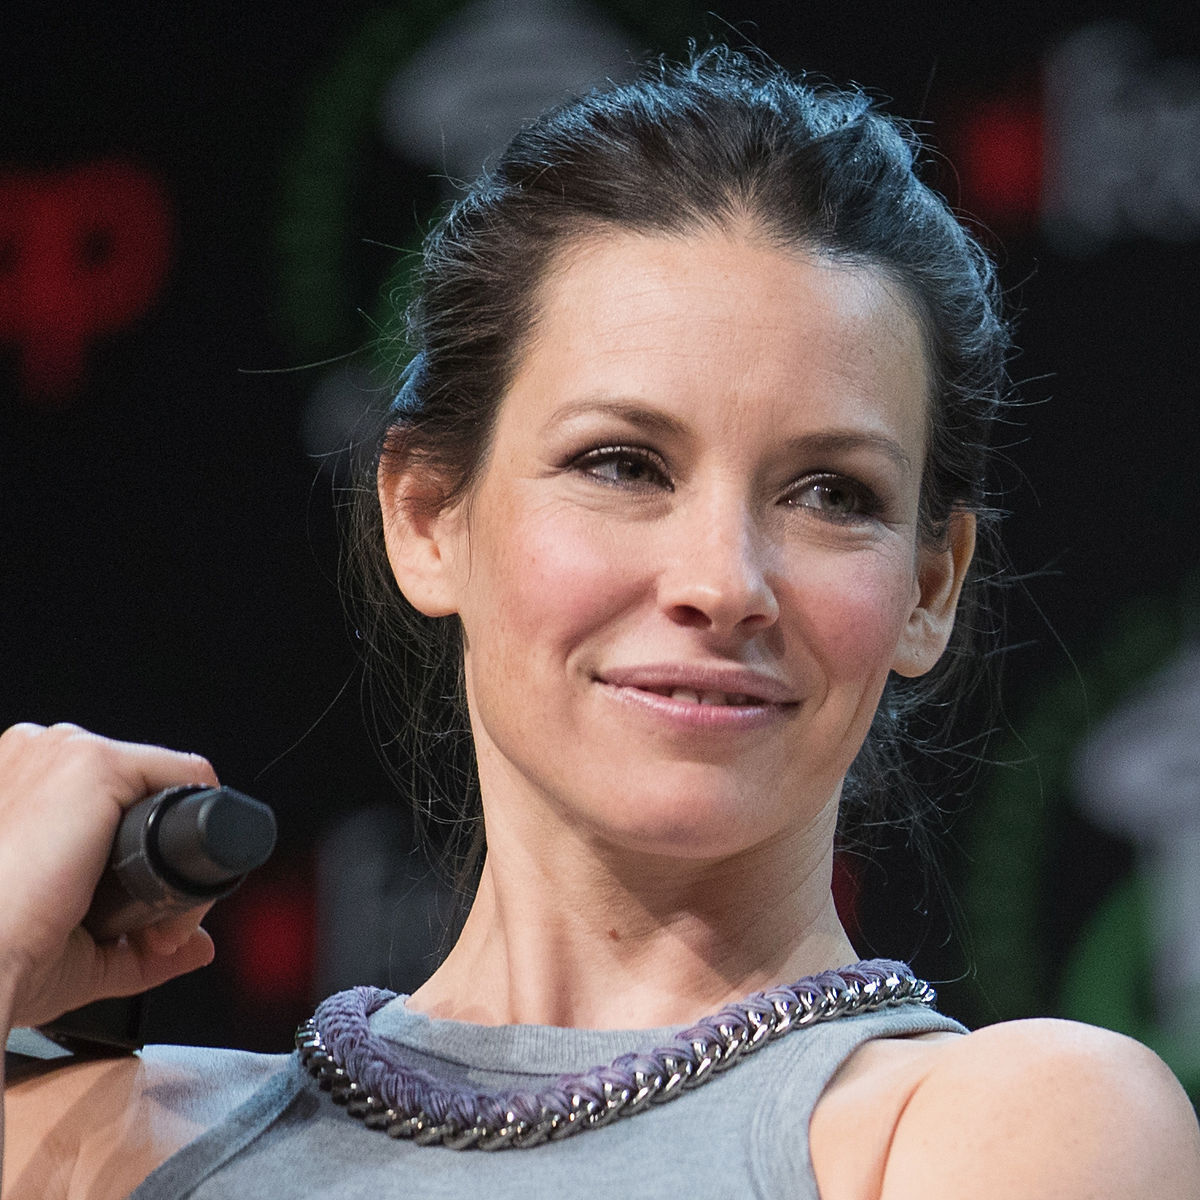 Evangeline Lilly says she felt pressured to undress on 'Lost'